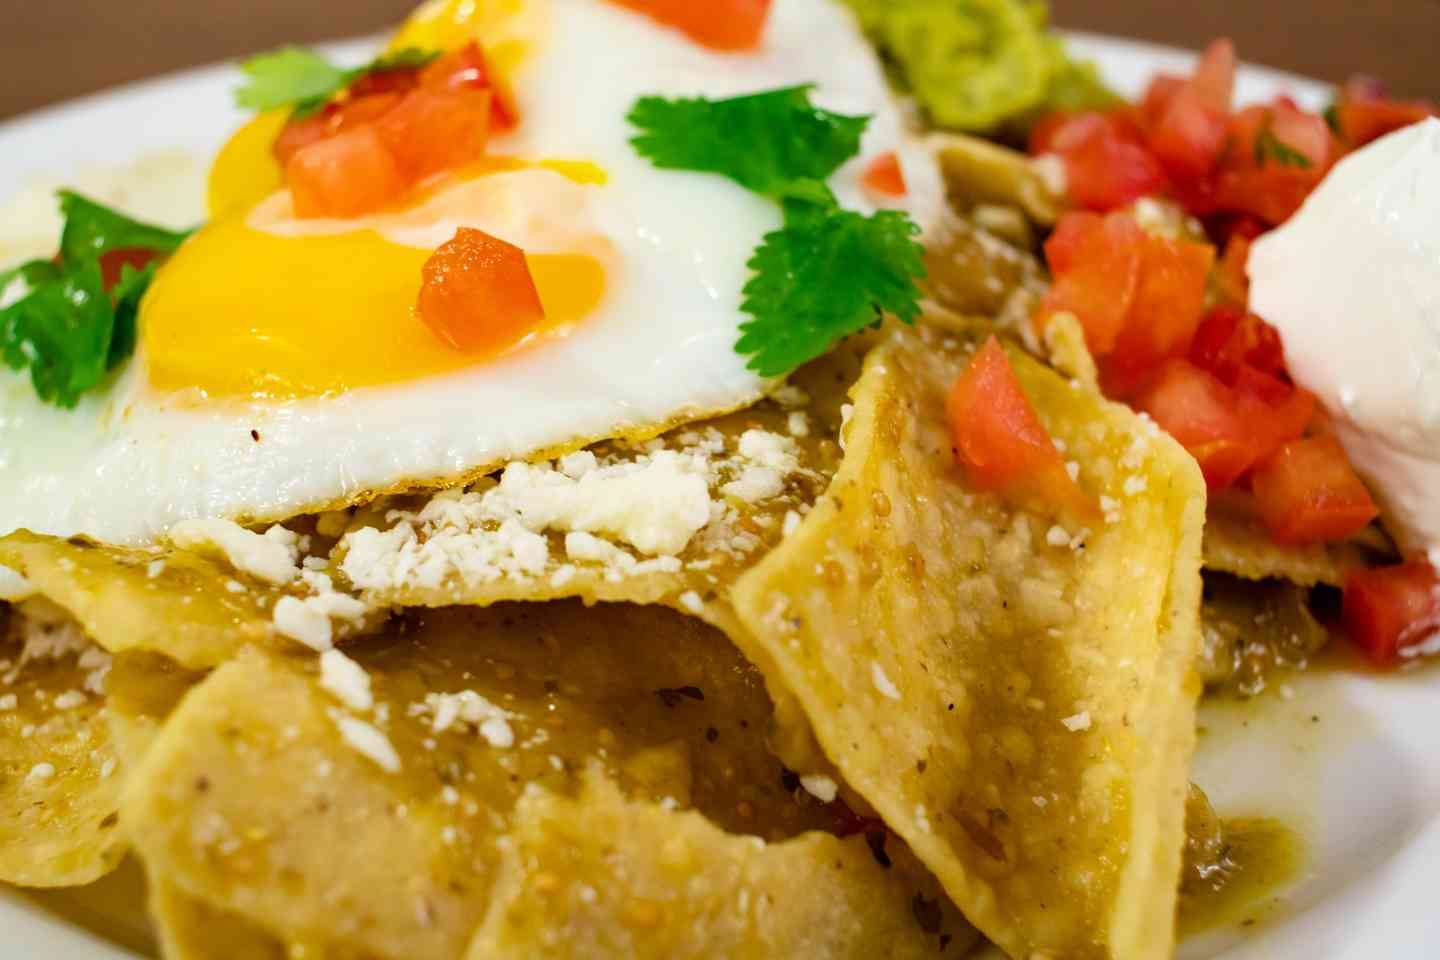 The Chilaquiles